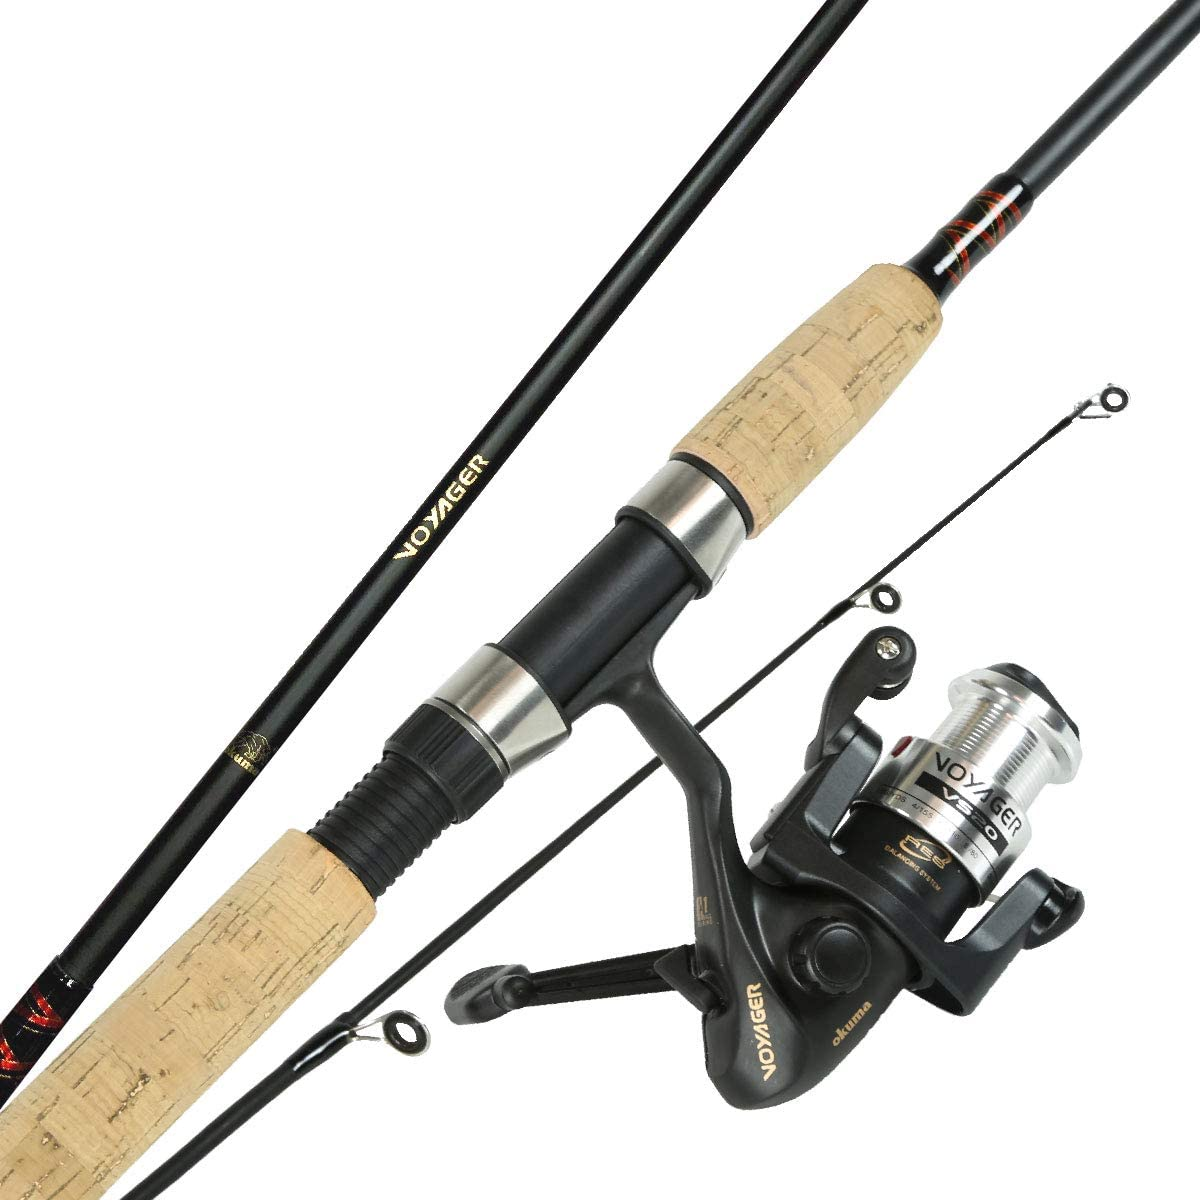 Top 10 Best Backpacking Fishing Poles/Rods In 2020 Reviews 5